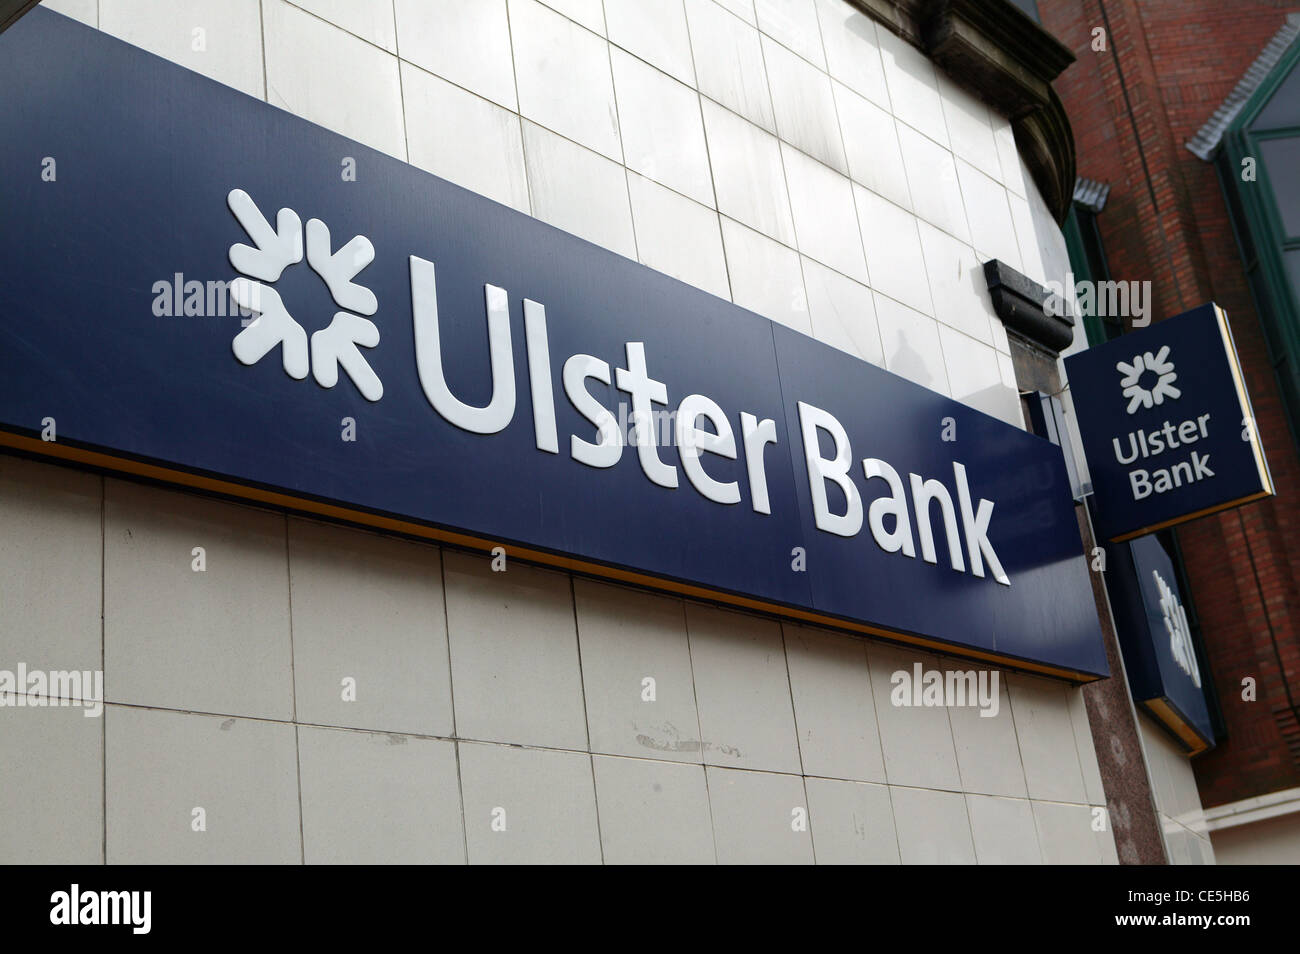 Ulster Bank Sign, Royal Bank of Scotland Logo, Navy blue and white corporate sign. On Cream tiles - Stock Image